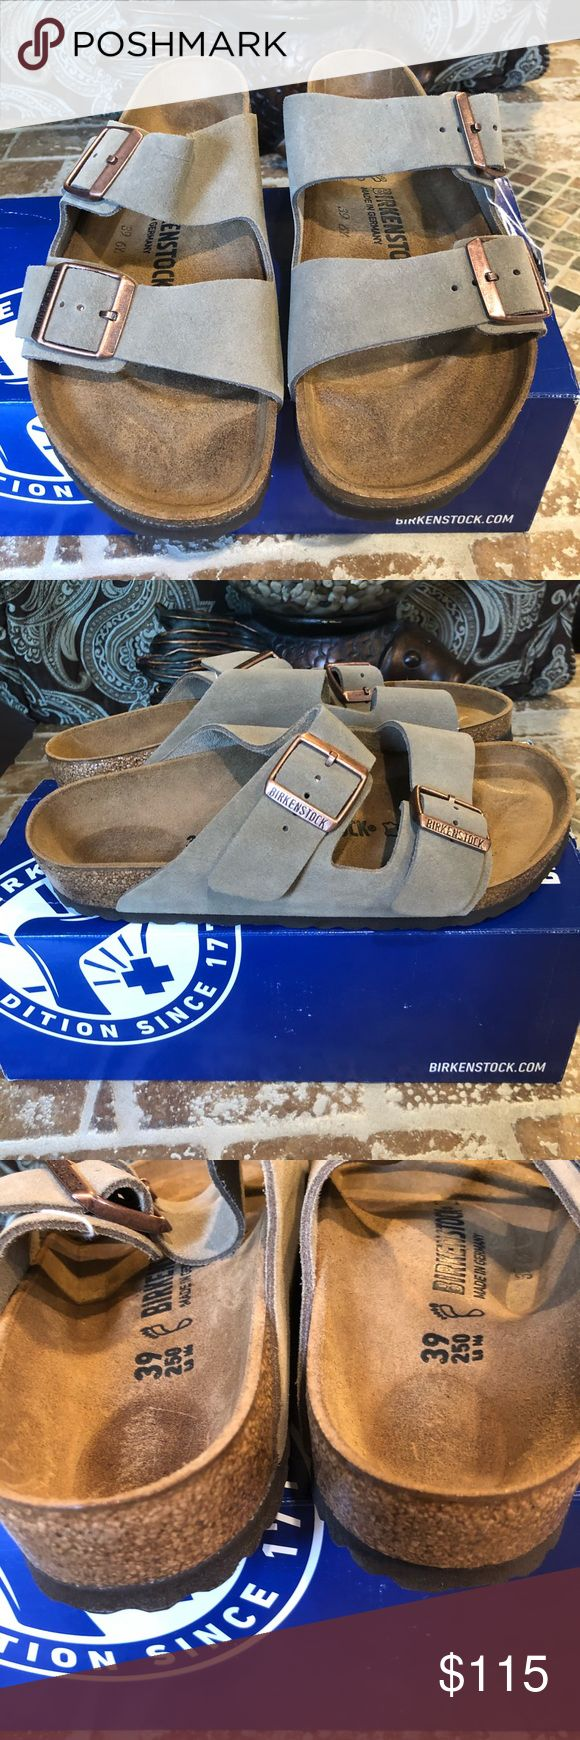 Birkenstock NWT Size 39 L8 M6 Brand new. Original box Arizona Suede Leather Taupe The often imitated, never duplicated, category-defining, two-strap wonder from Birkenstock. A comfort legend and a fashion staple. With adjustable straps and a magical cork footbed that conforms to the shape of your foot, a truly custom fit is as effortless as the classic design. Birkenstock Shoes Sandals